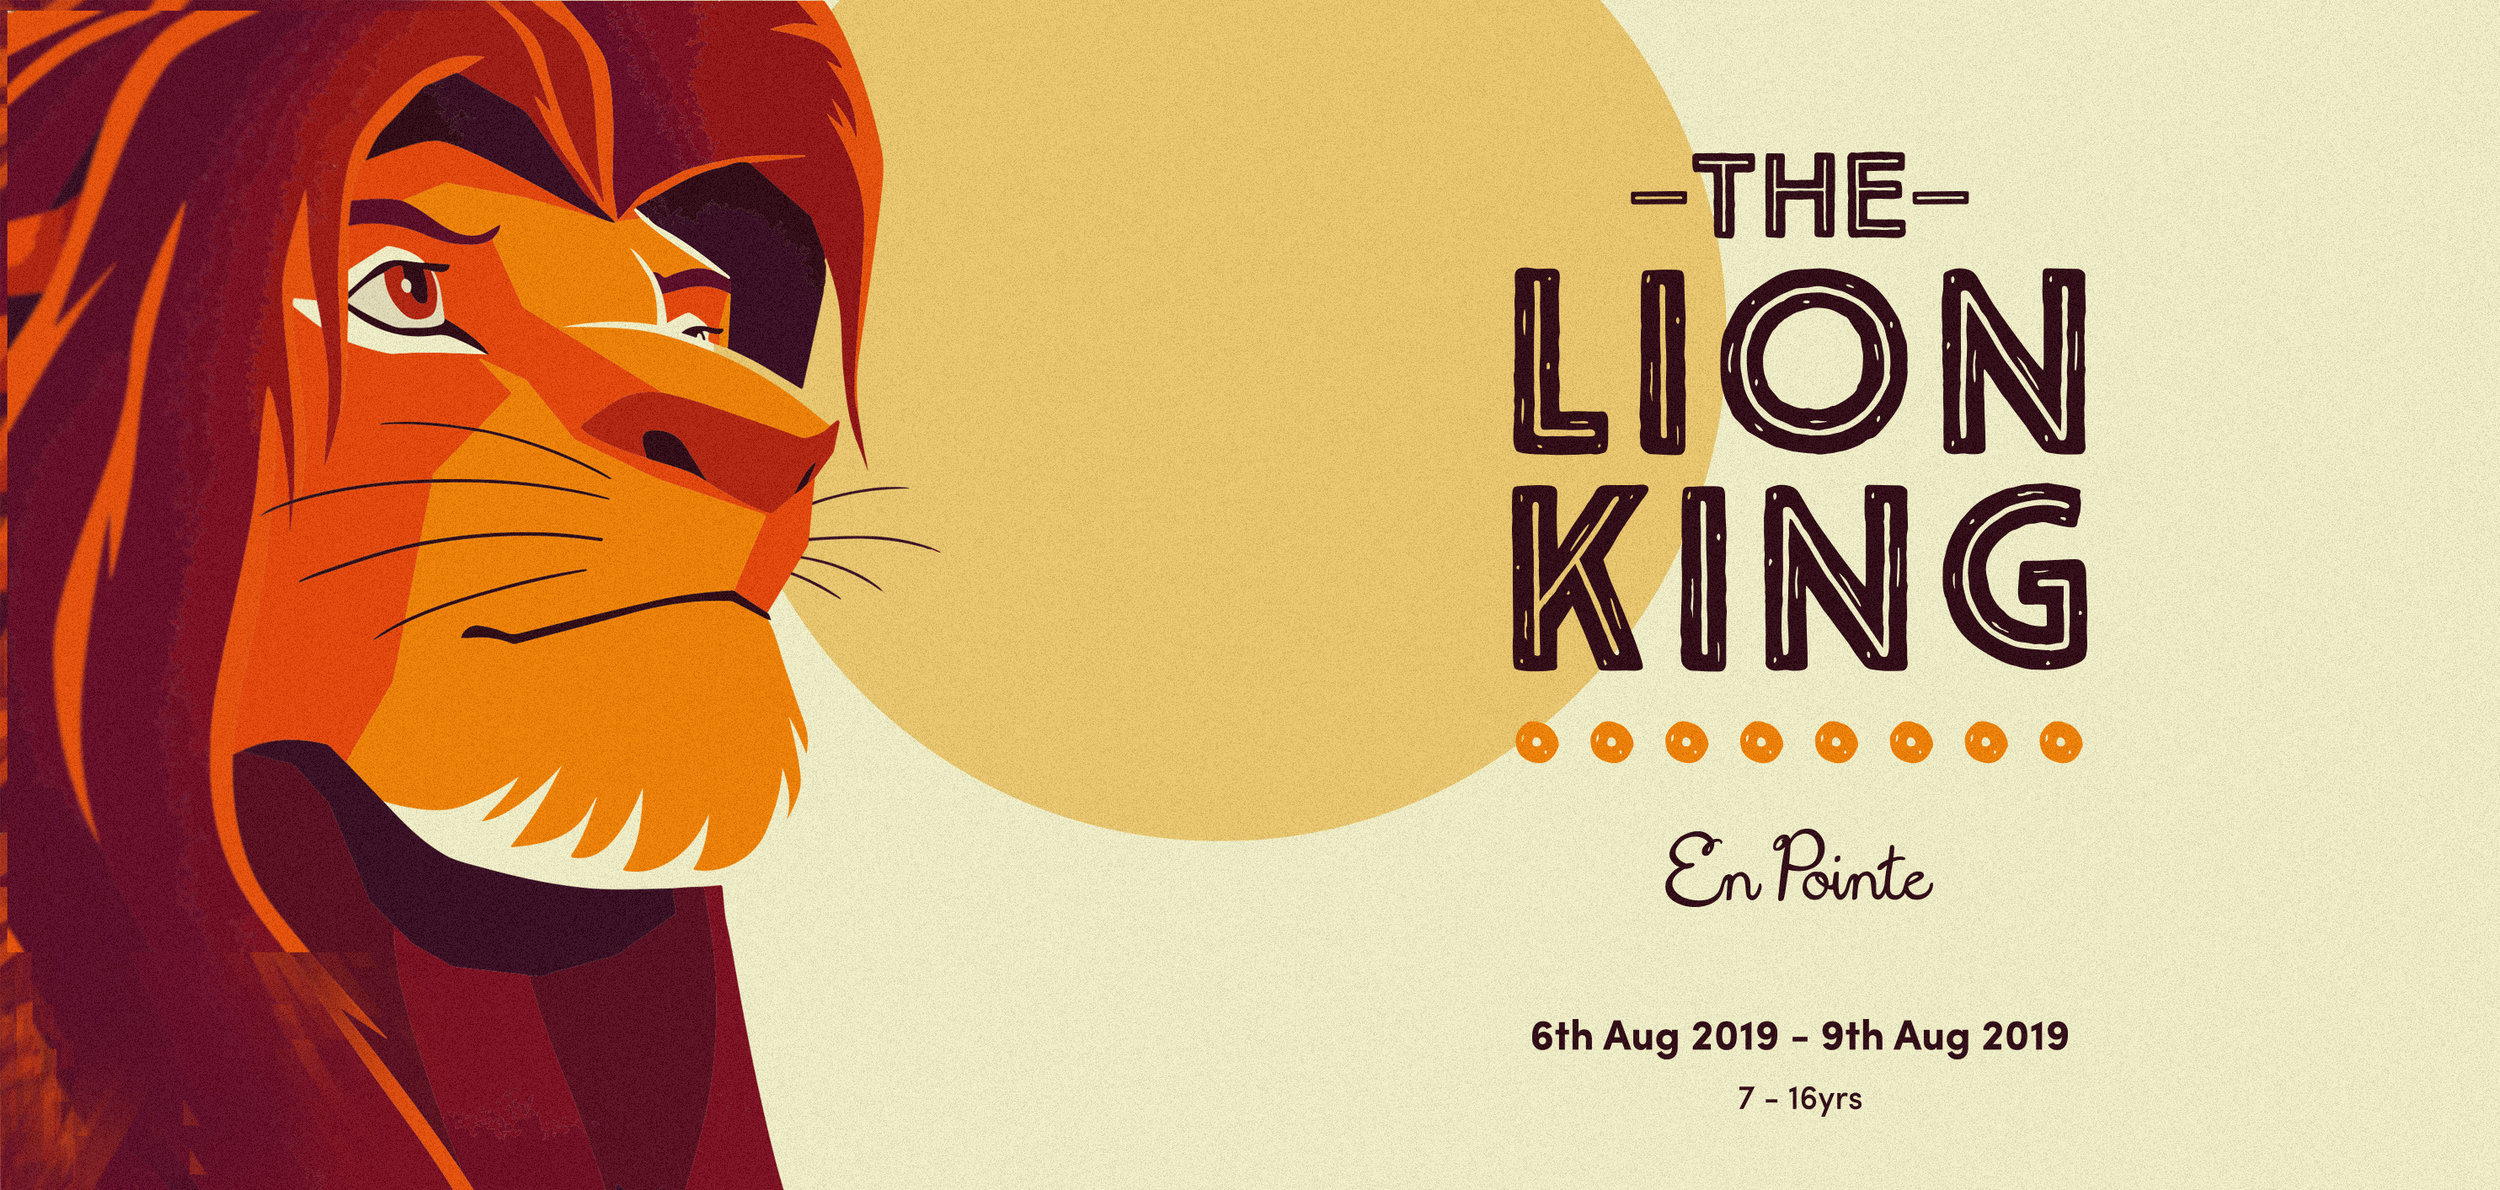 The Lion King workshop at En Pointe York / 6th Aug - 9th Aug 2019